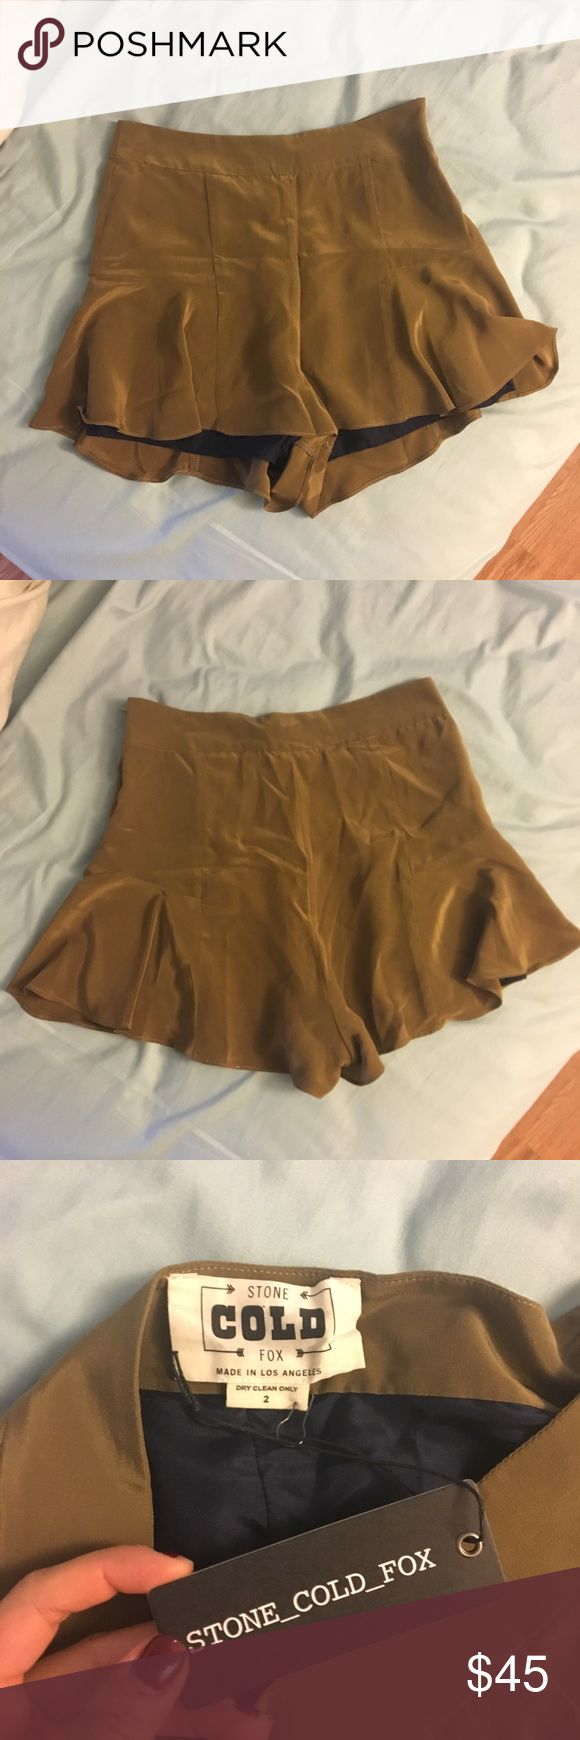 NWT Stone Cold Fox Haight flutter silk shorts 2/S 100% silk flutter shorts. Size 2 and fits Small/Medium or size 26, 27, 28 jeans! SO BEAUTIFUL and flattering, I just never got a chance to wear due to the cold weather. Color in picture is accurate, a woody olive green :) Stone Cold Fox Shorts